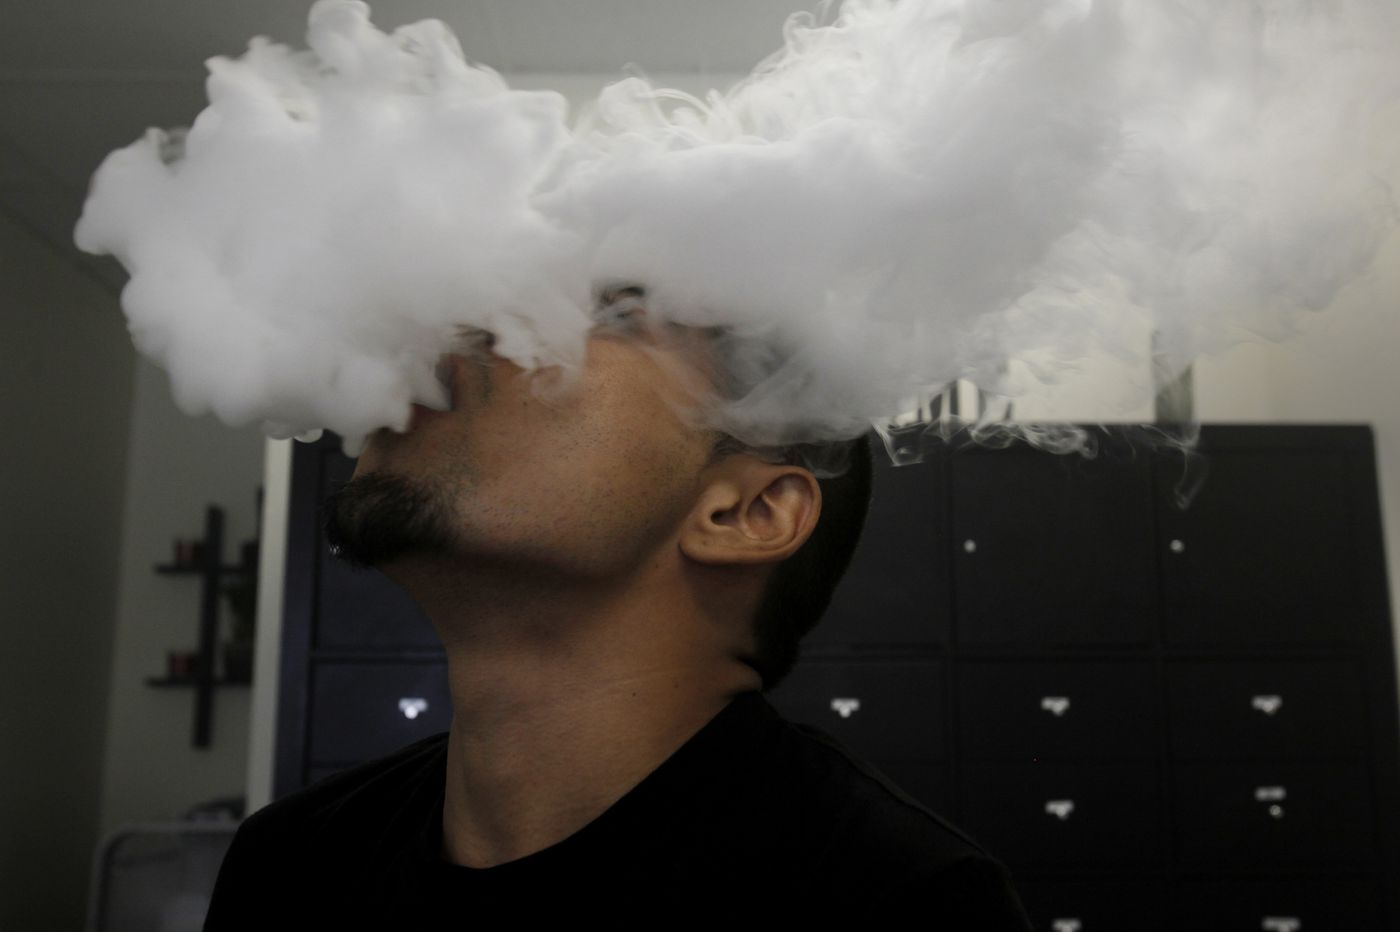 E-cigarettes fuel another dramatic increase in nicotine use among U.S. teens